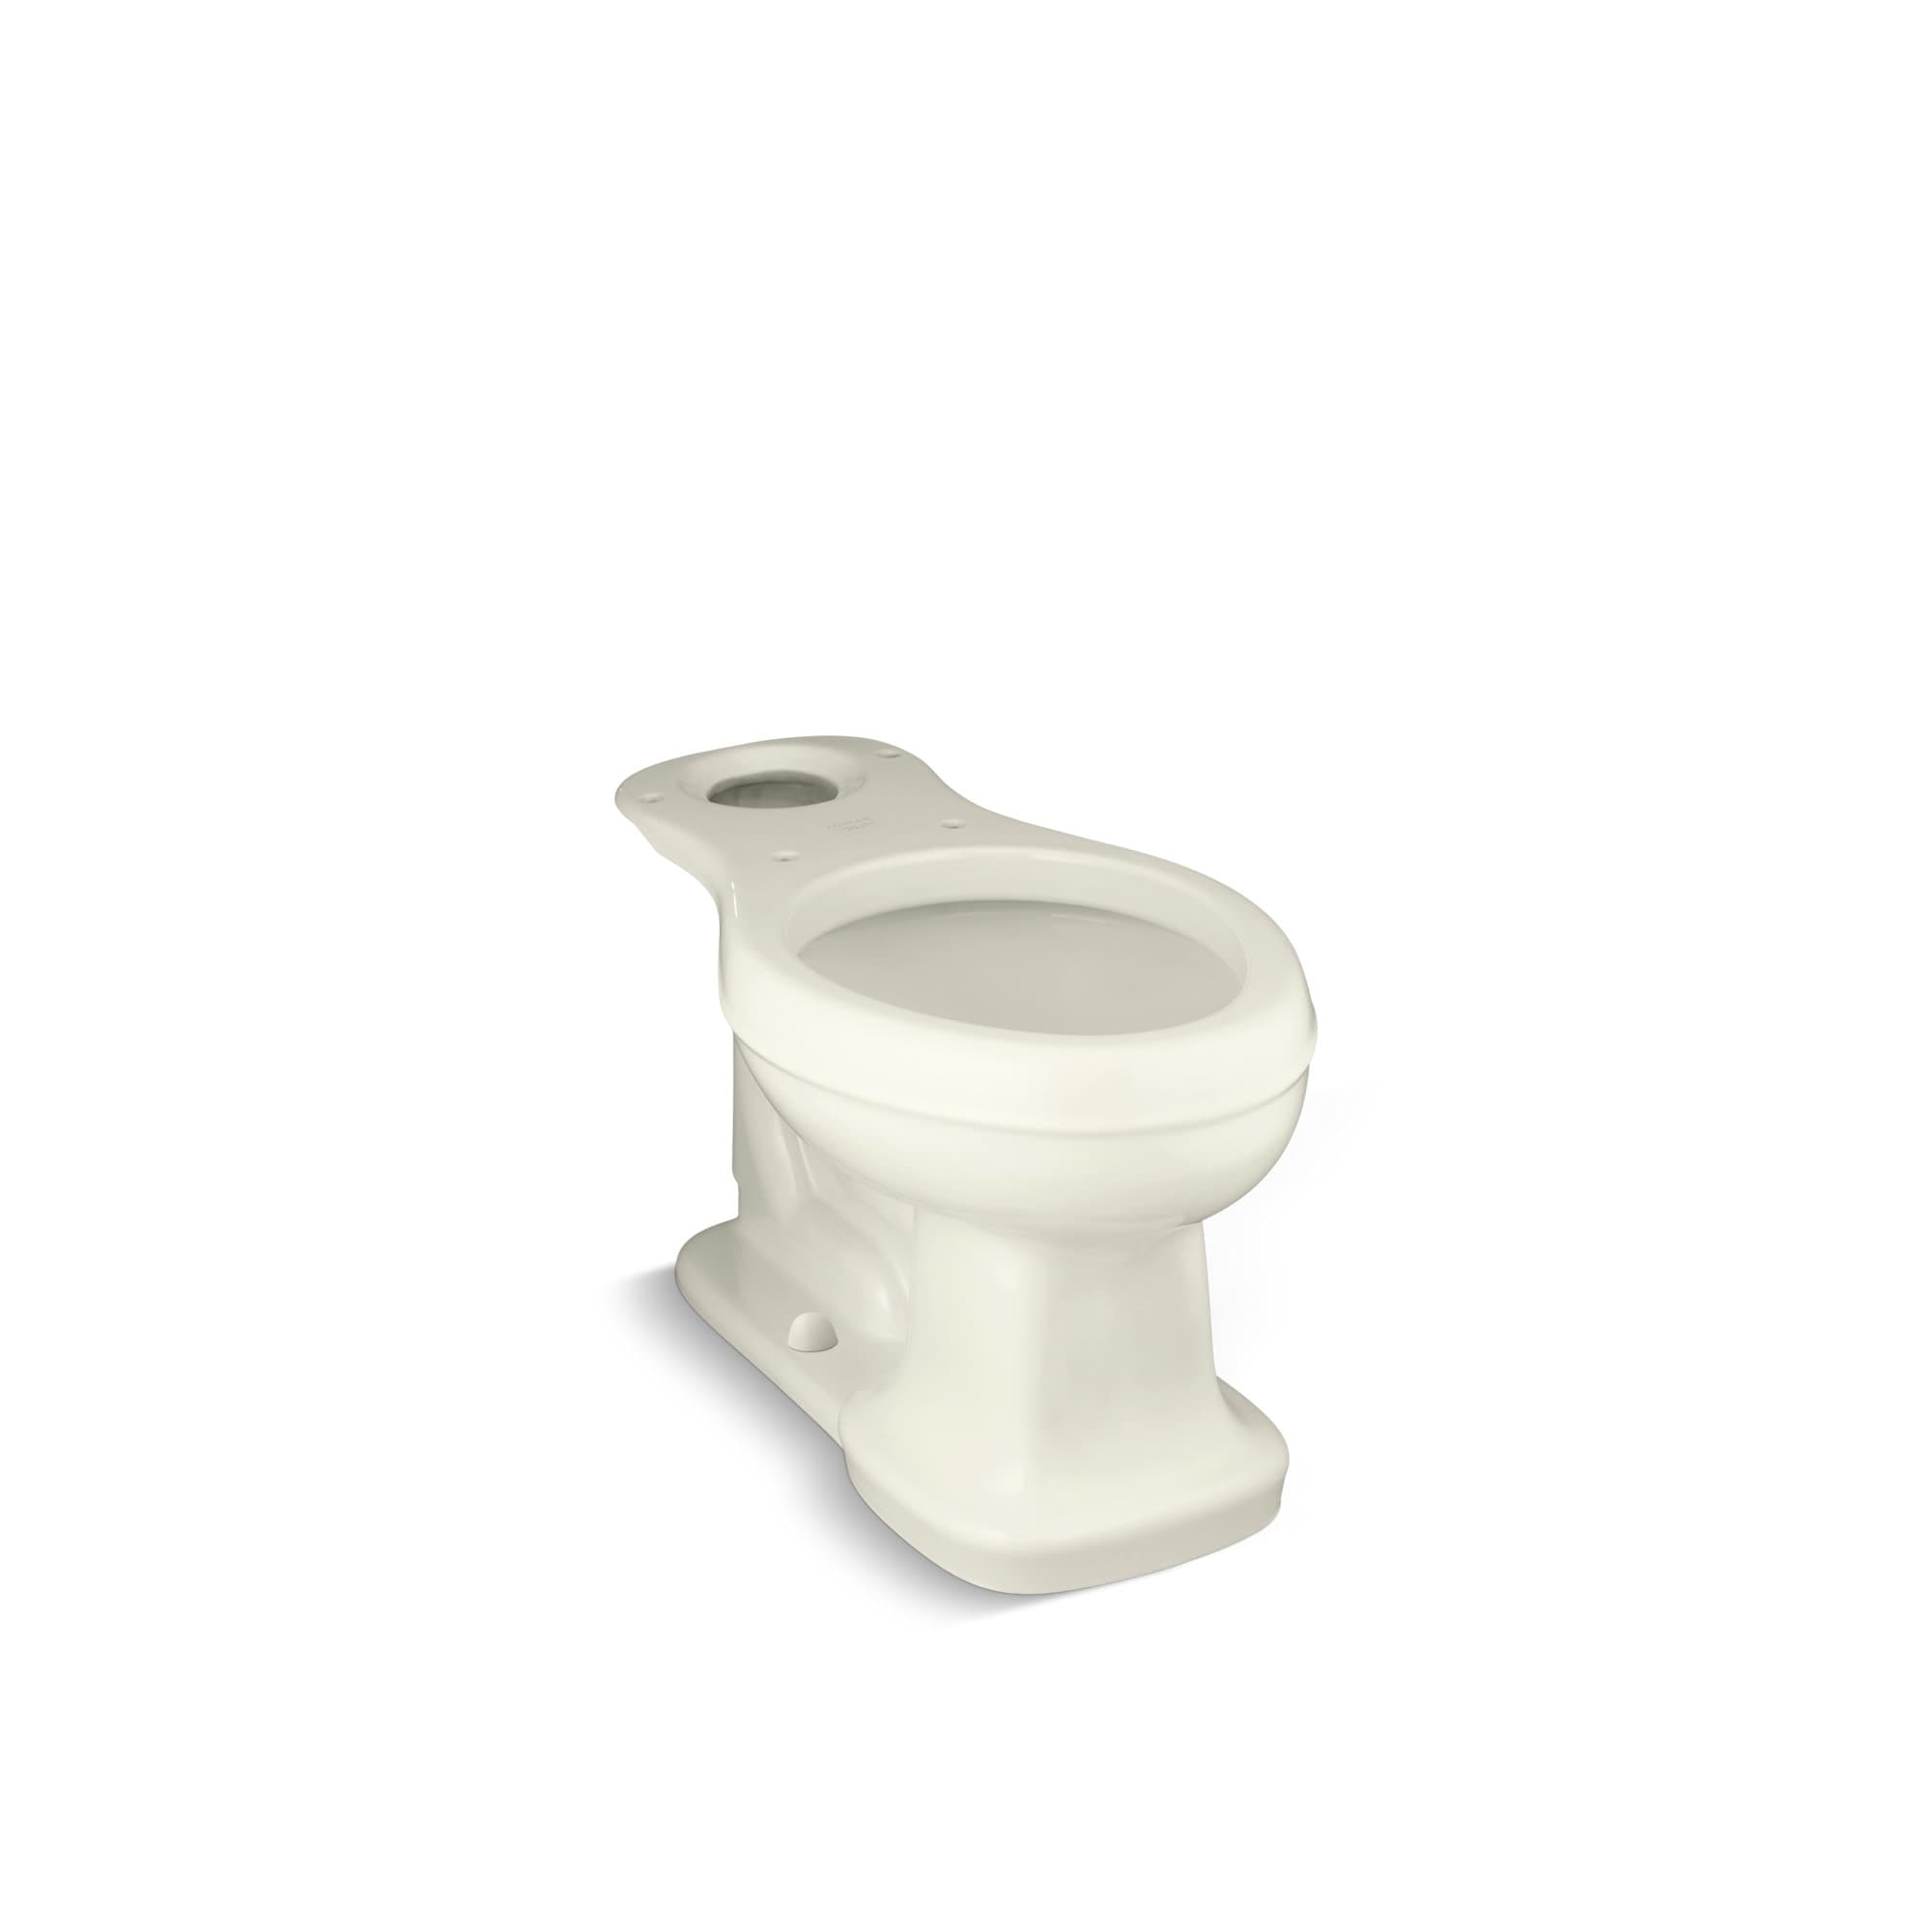 Admirable Kohler K 4067 Elongated Comfort Height Toilet Bowl Only From The Bancroft Collection Forskolin Free Trial Chair Design Images Forskolin Free Trialorg